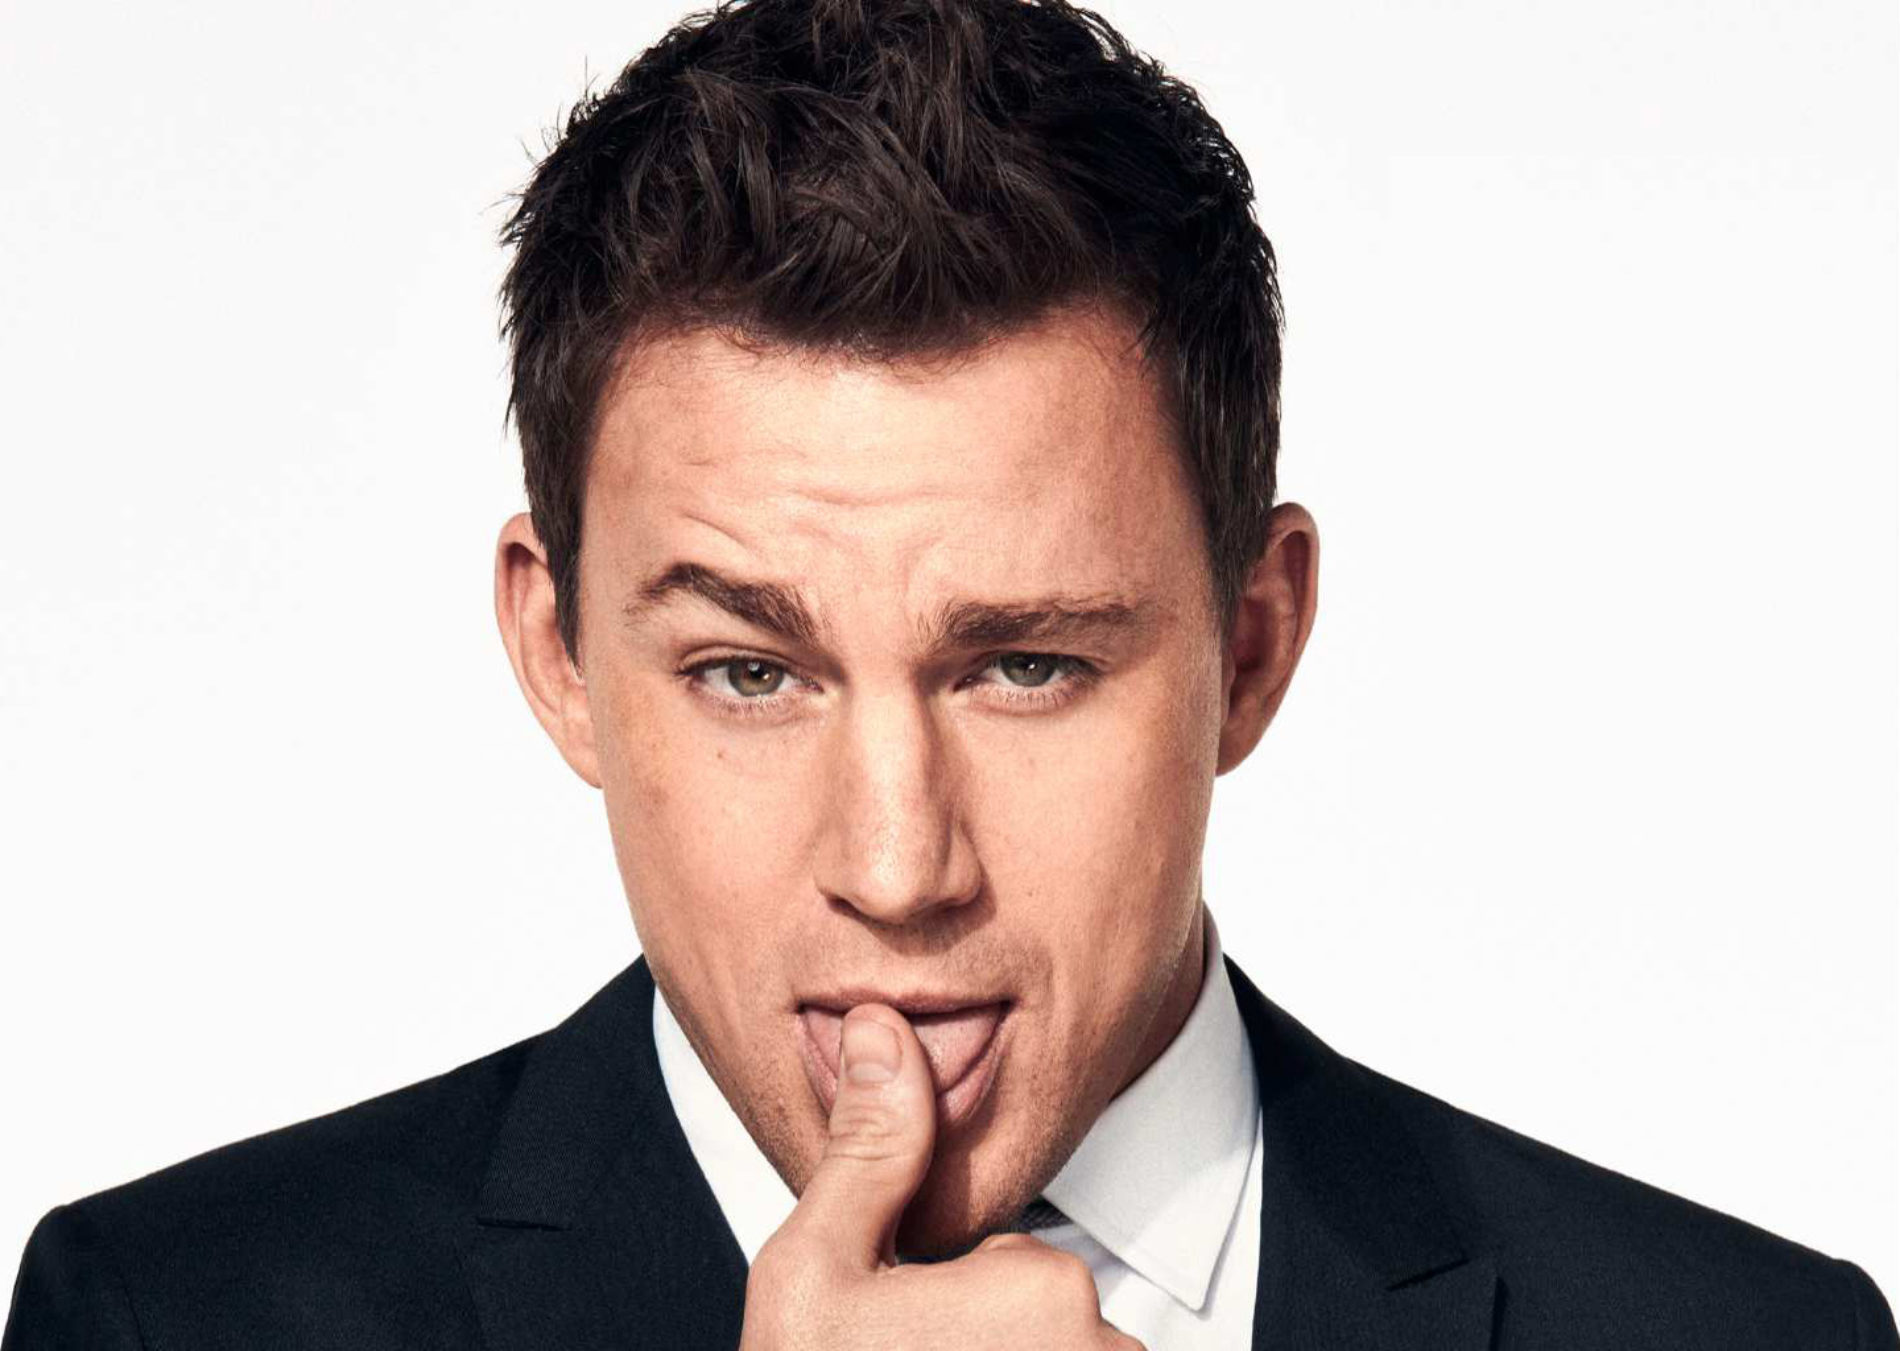 10 tweets that made women fall in love with Channing Tatum